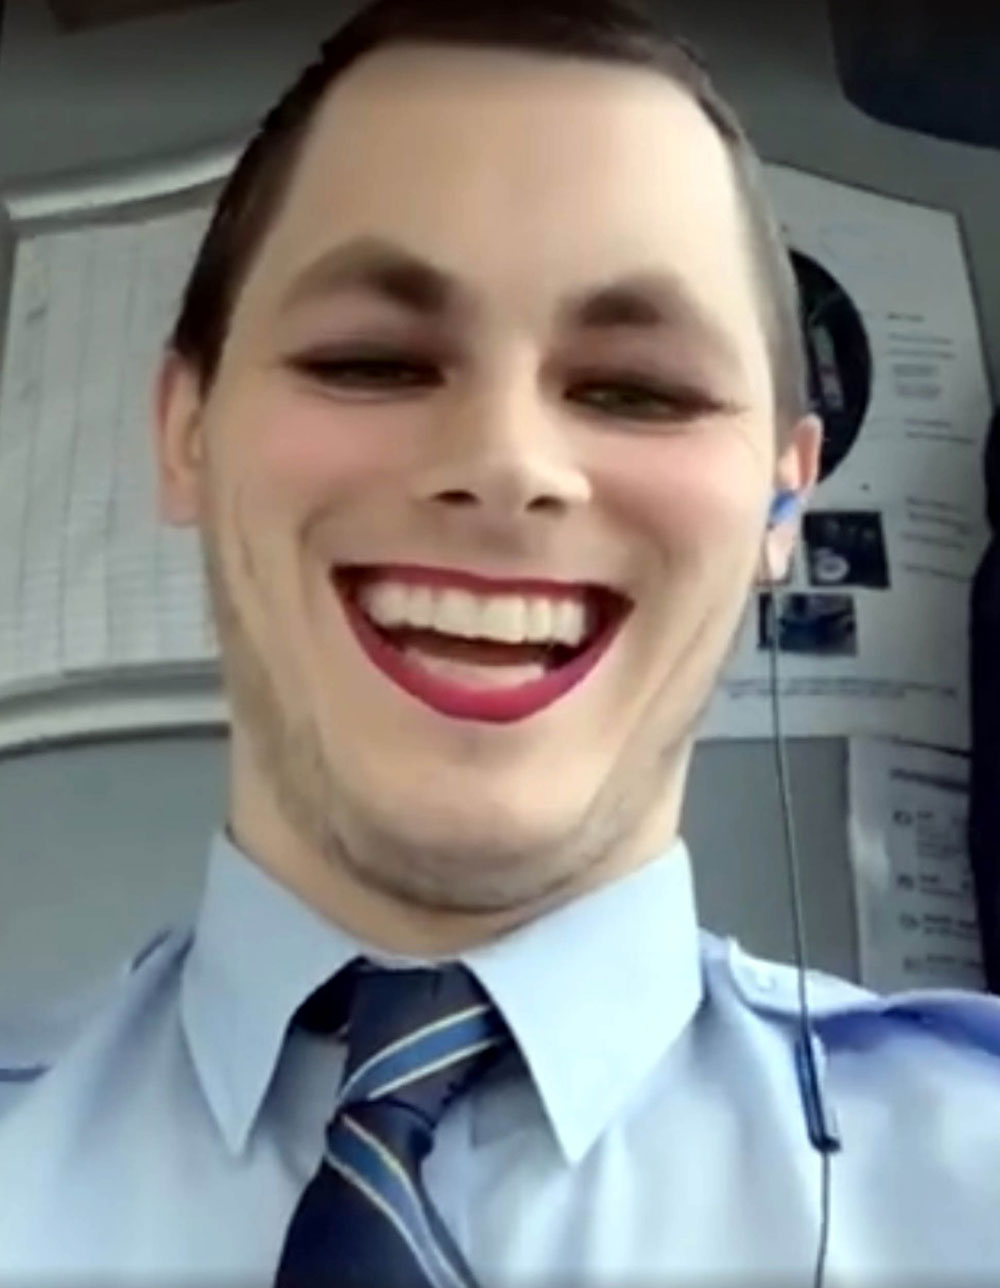 Leon distorted his face while driving the bus